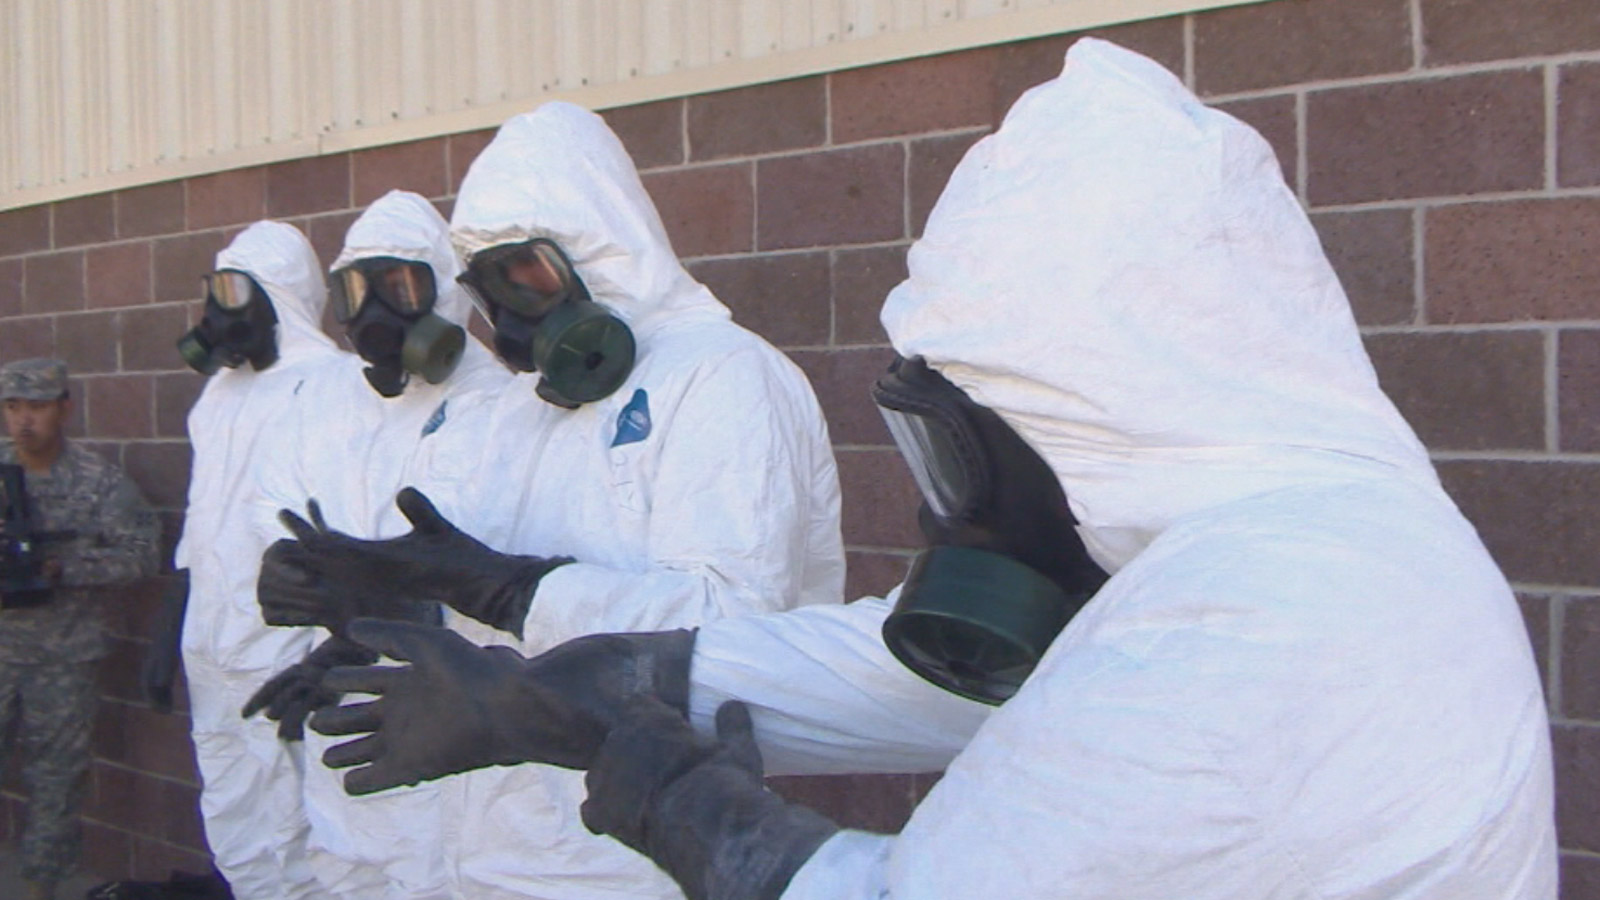 Fort Carson soldiers suit up for Ebola deployment in October (credit: CBS)